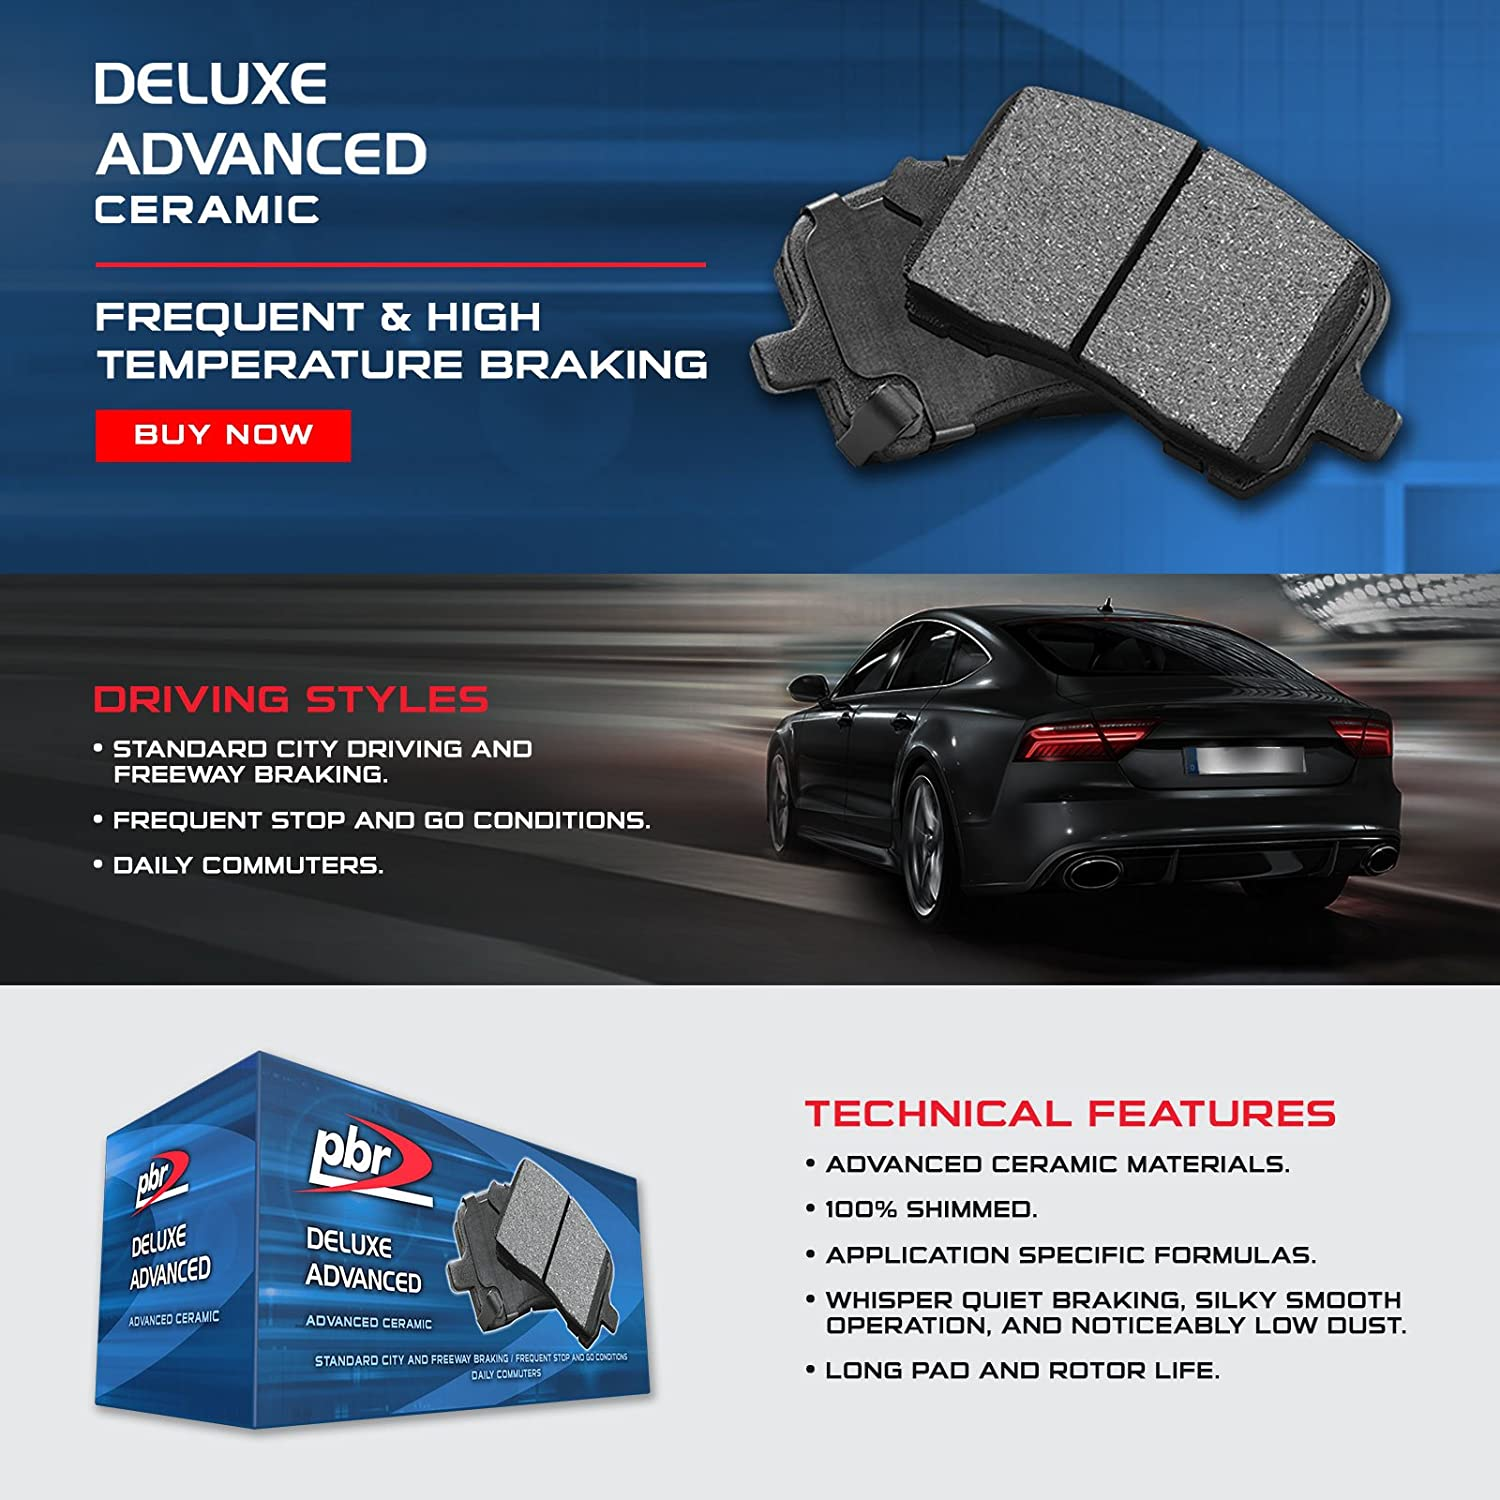 Ceramic Brake Compound 3551-1107-00 Front PBR-AXXIS Deluxe Advanced Brake Pads